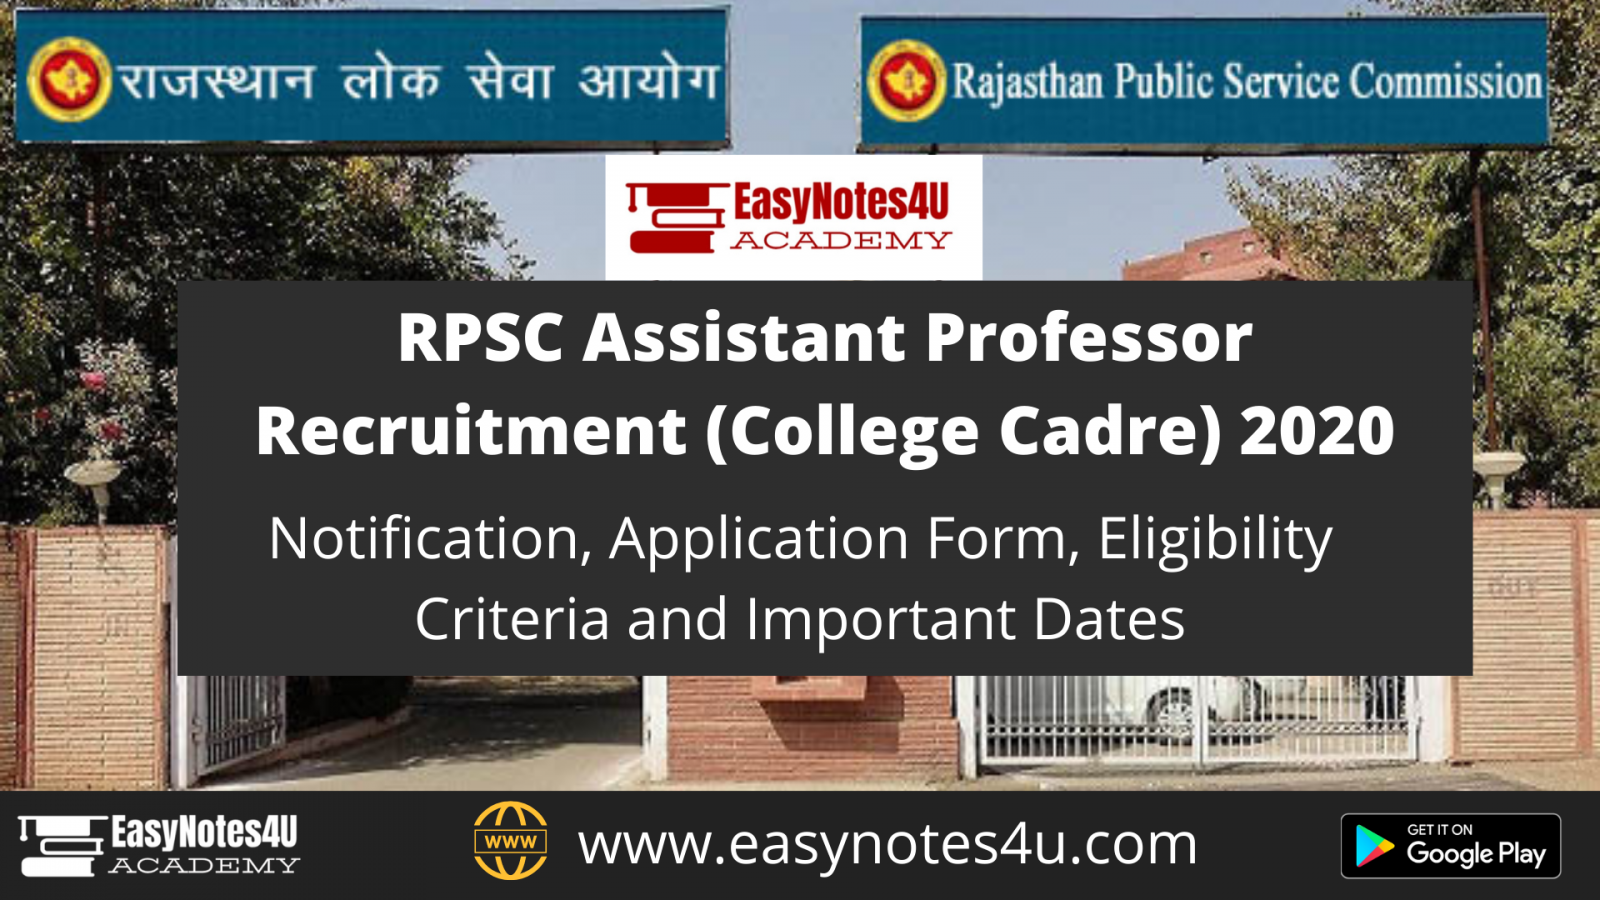 RPSC Recruitment 2020: 918 Vacancies for Assistant Professor Posts, Apply Online, Application Form, Eligibility Criteria and Important Dates